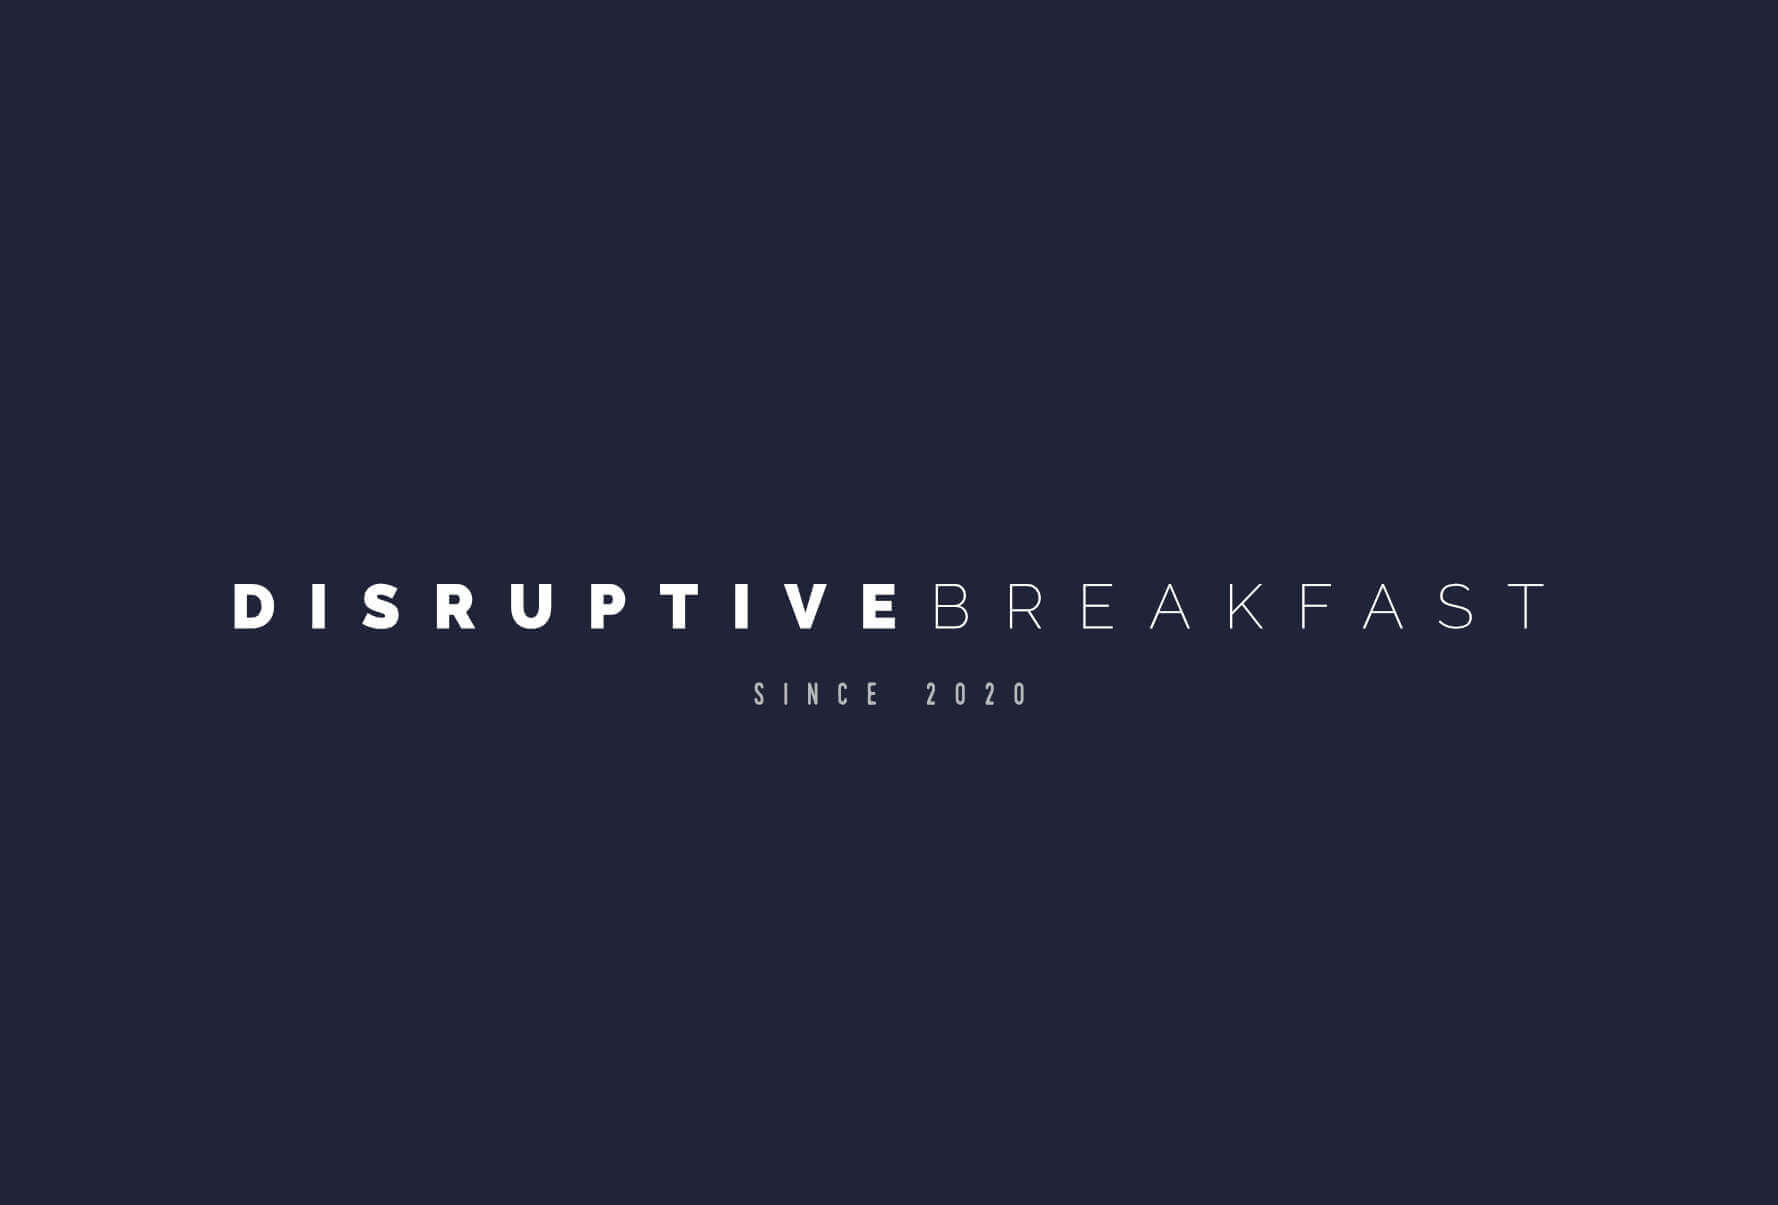 Disruptive Breakfast